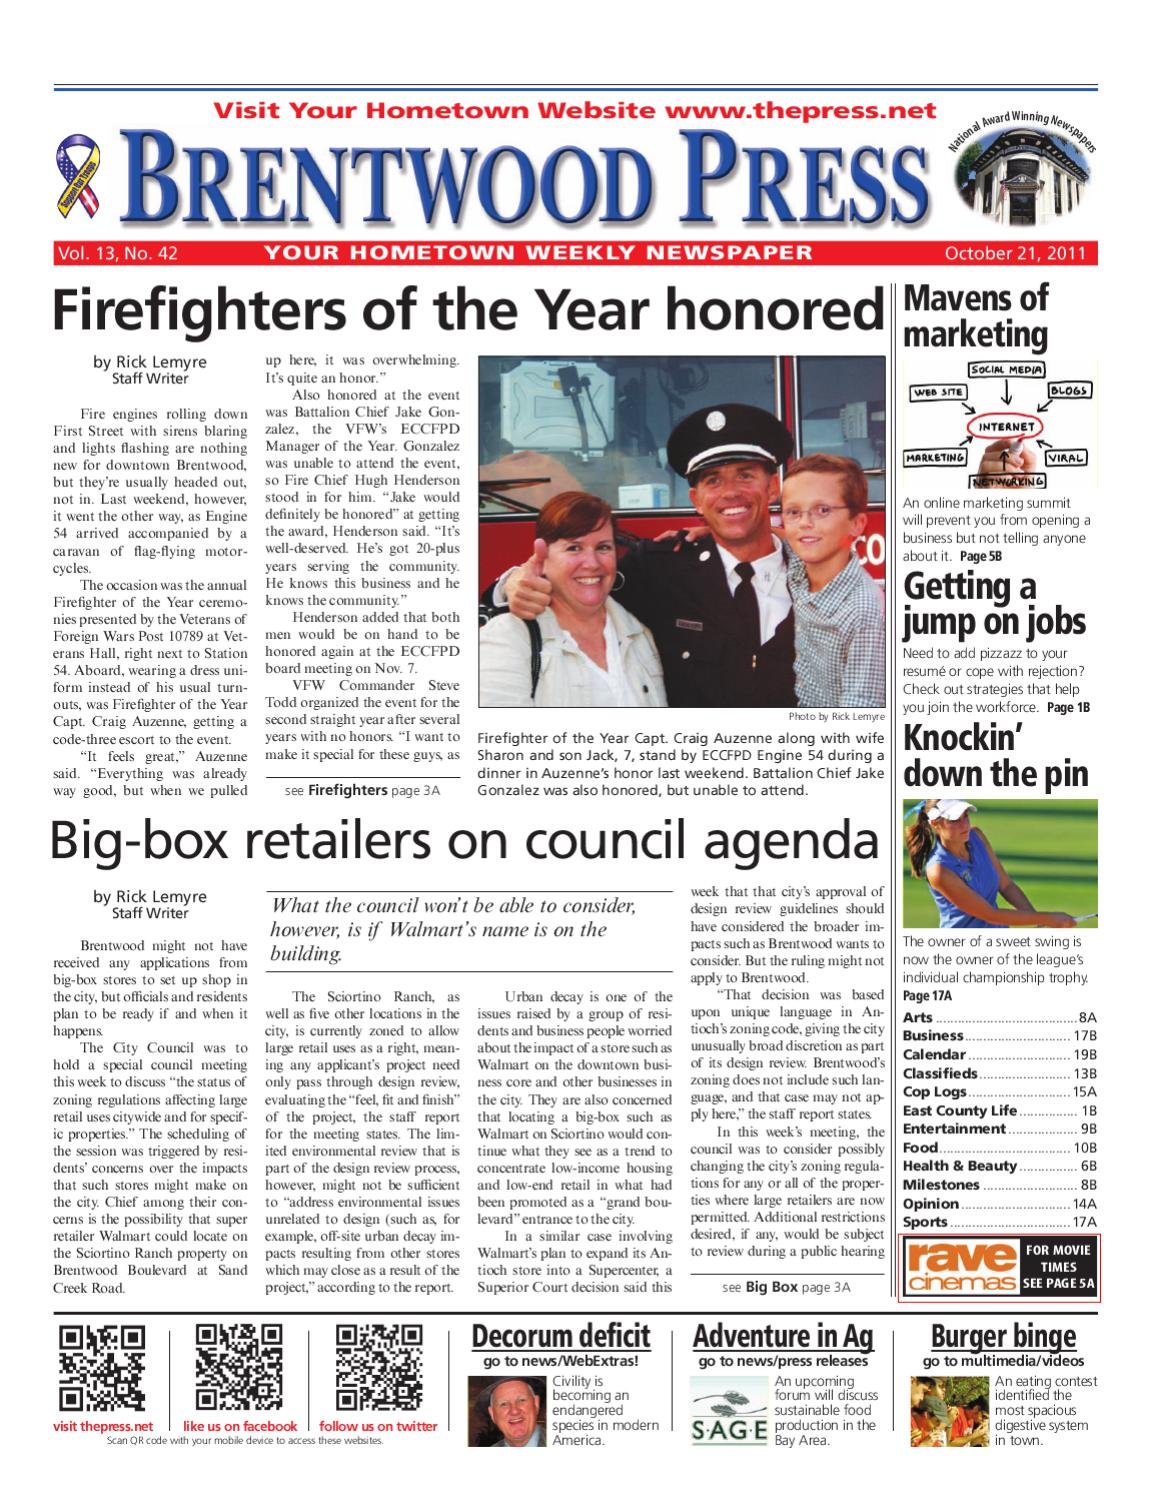 Brentwood Press_10 21 11 by Brentwood Press & Publishing - issuu